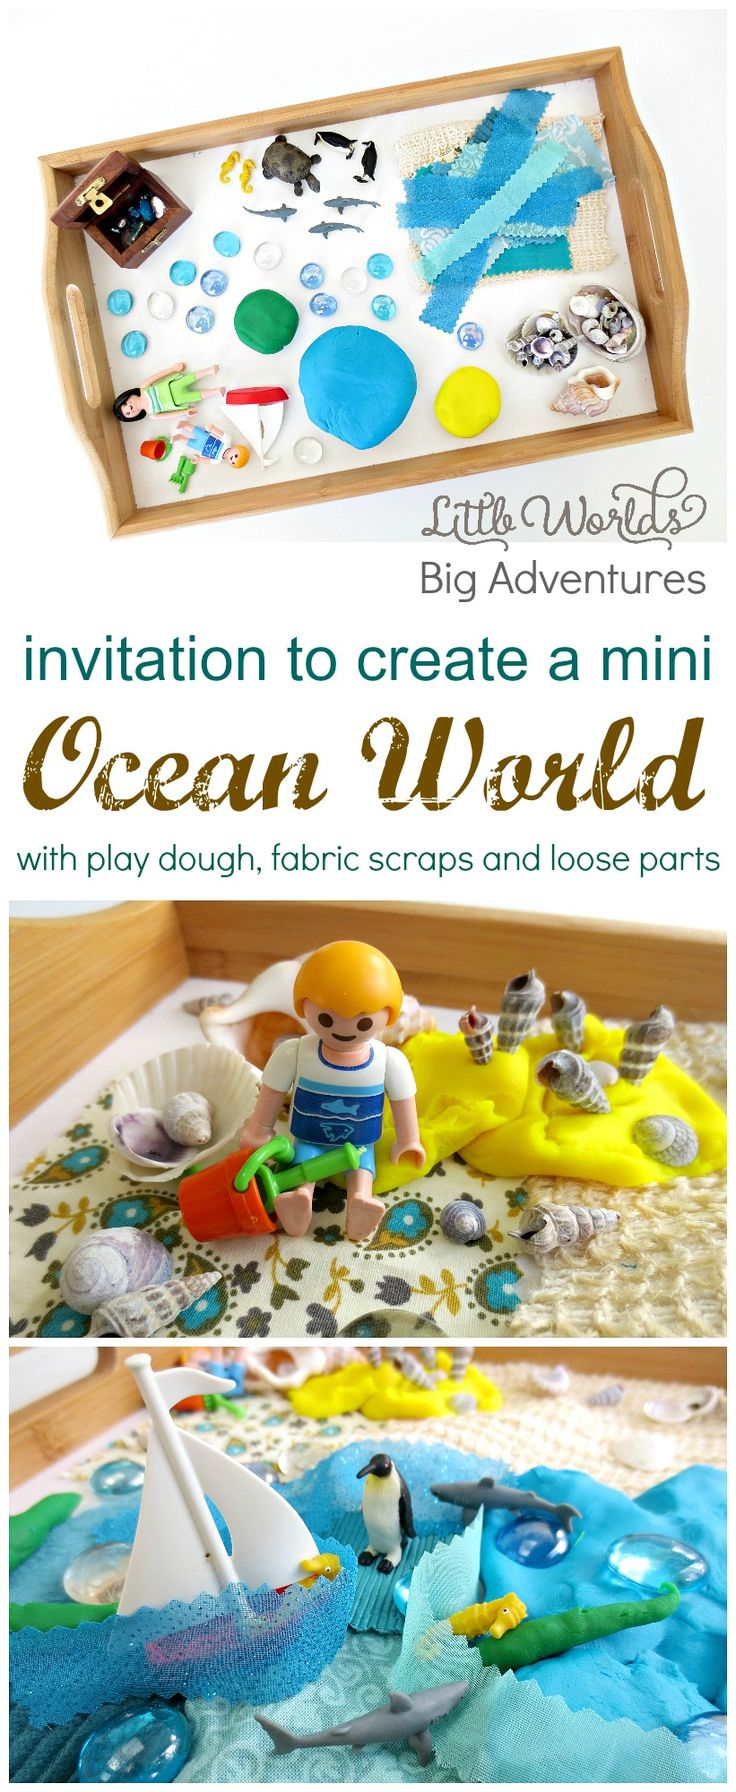 Invitation to Create a Mini Ocean World with Play Dough, Fabric Scraps and Loose Parts, Small World Play at it's Best! | Little Worlds Big Adventures